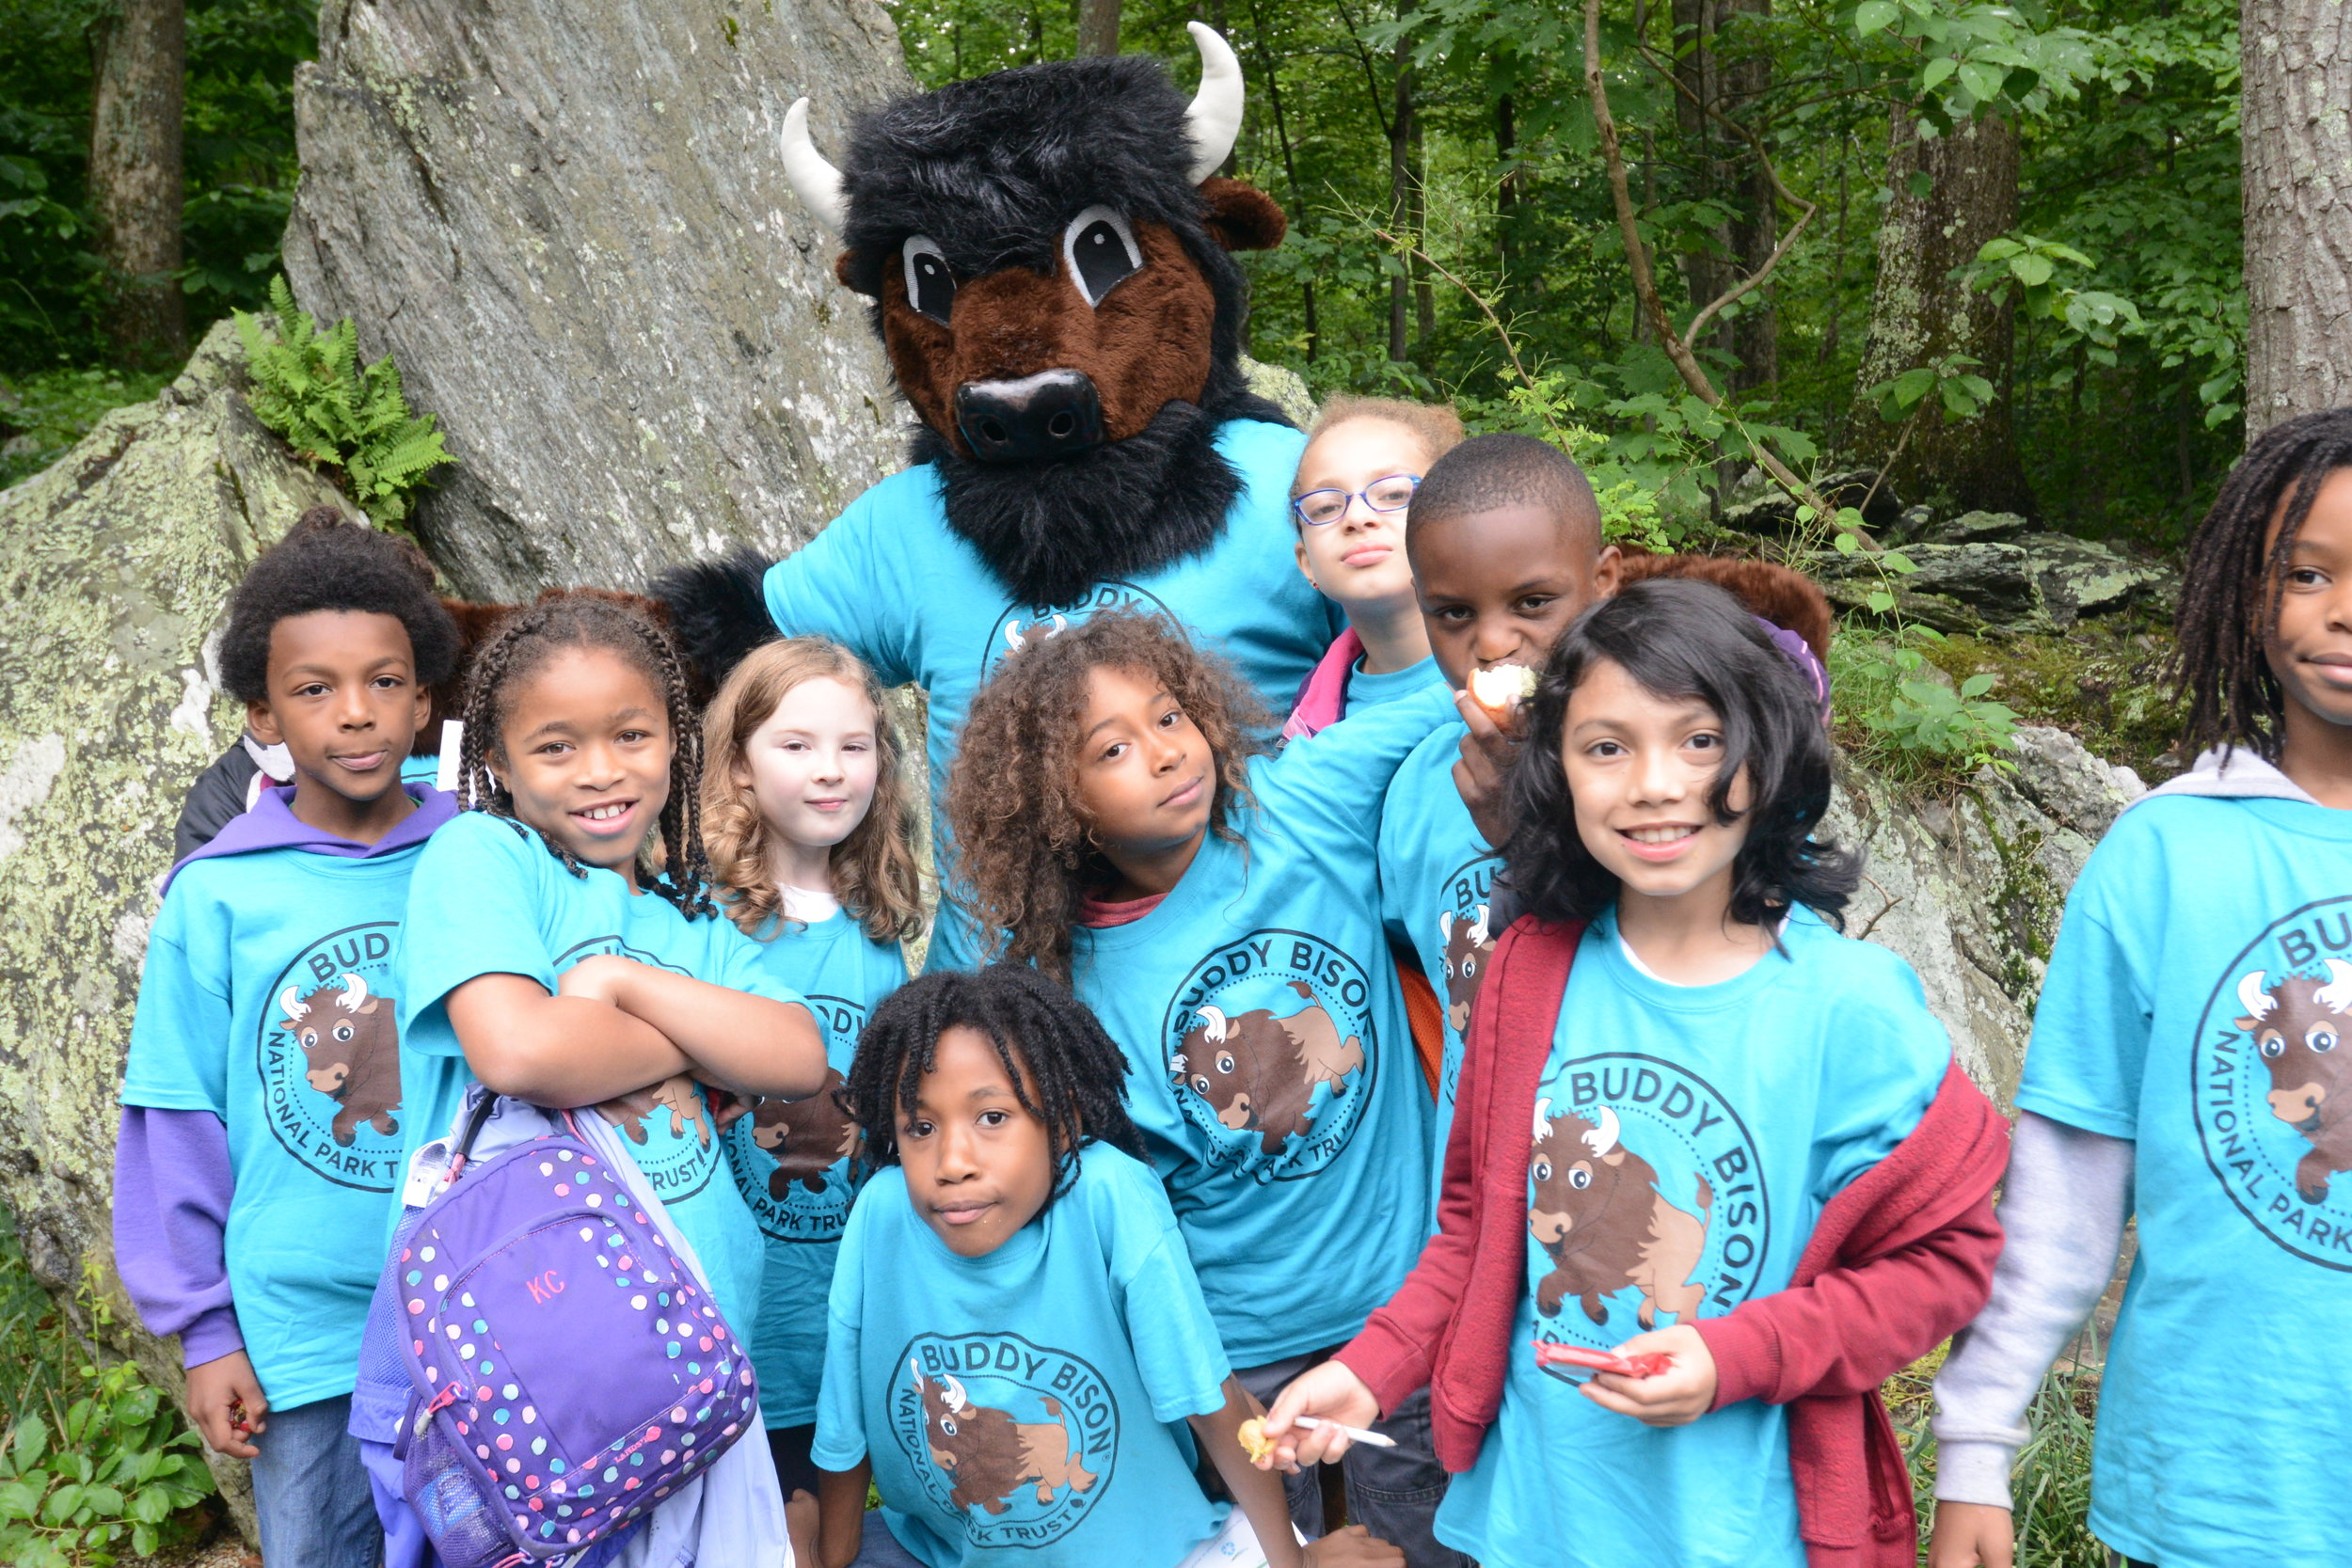 Children participate in an outdoor recreation program with Buddy Bison of the National Park Trust